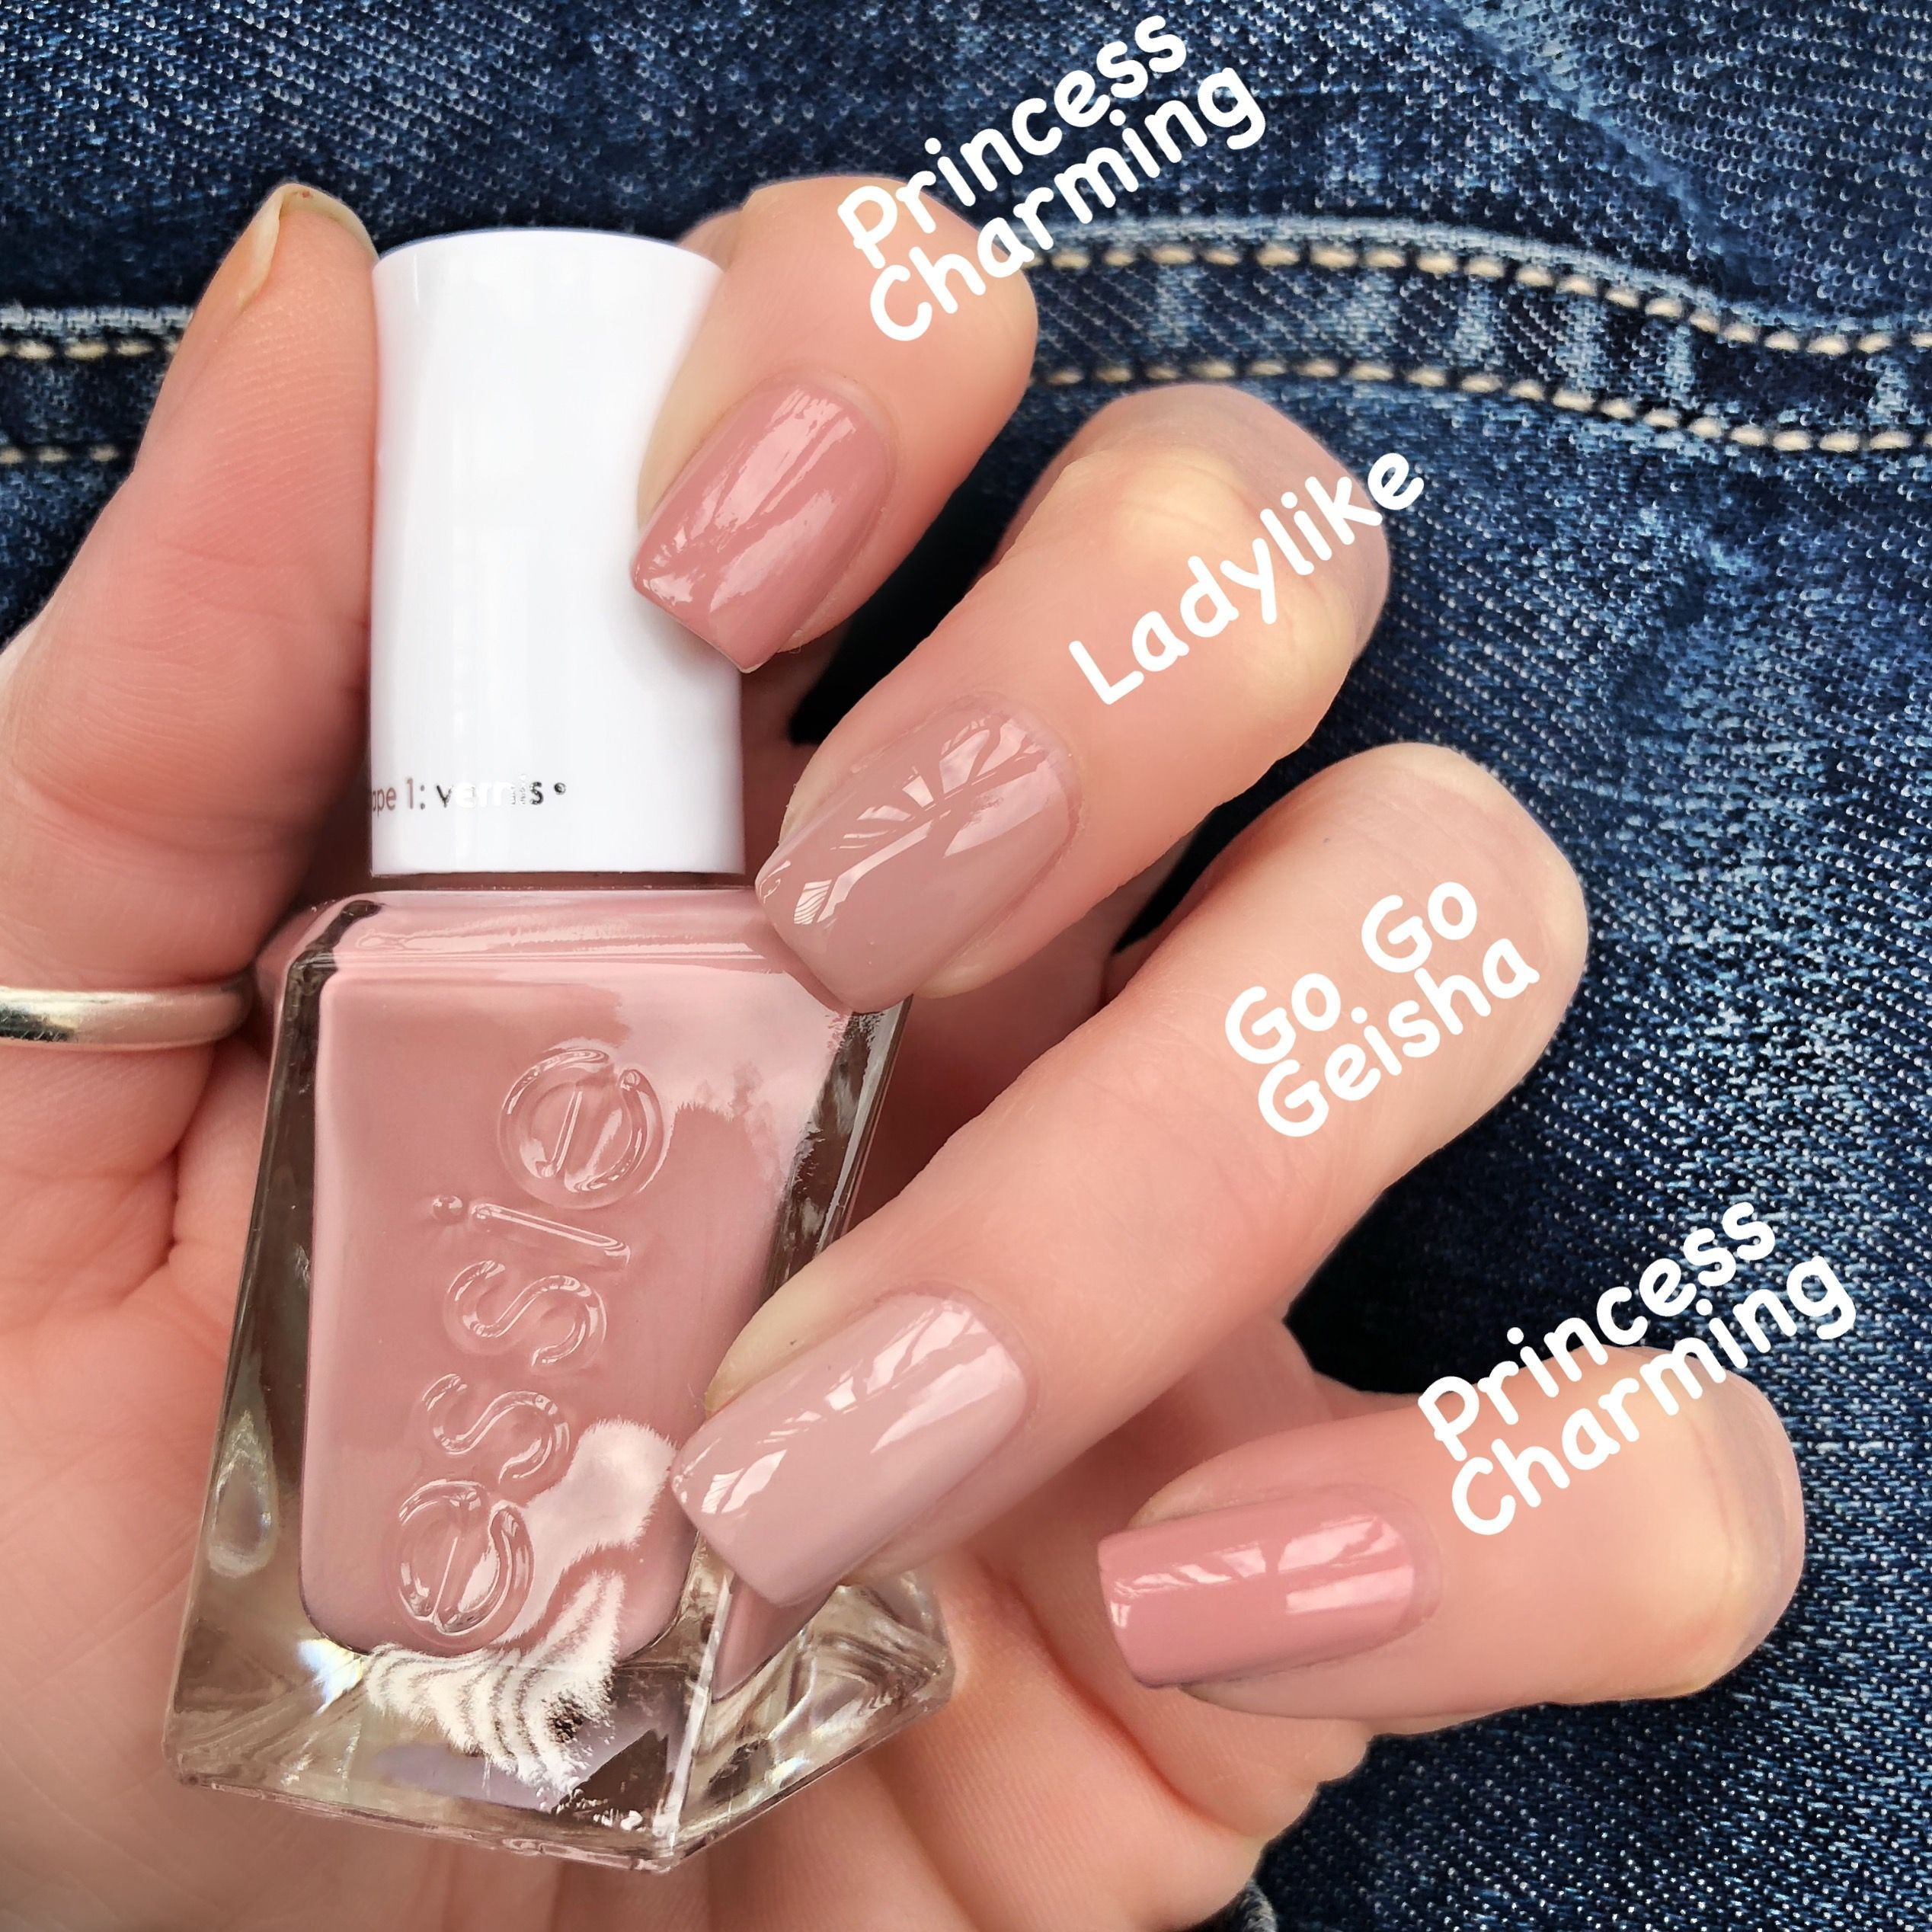 Nail And Hairstyle Popular Lifestyle Trends Ideas For Your Life Essie Gel Nails Gel Nail Colors Essie Nail Polish Colors